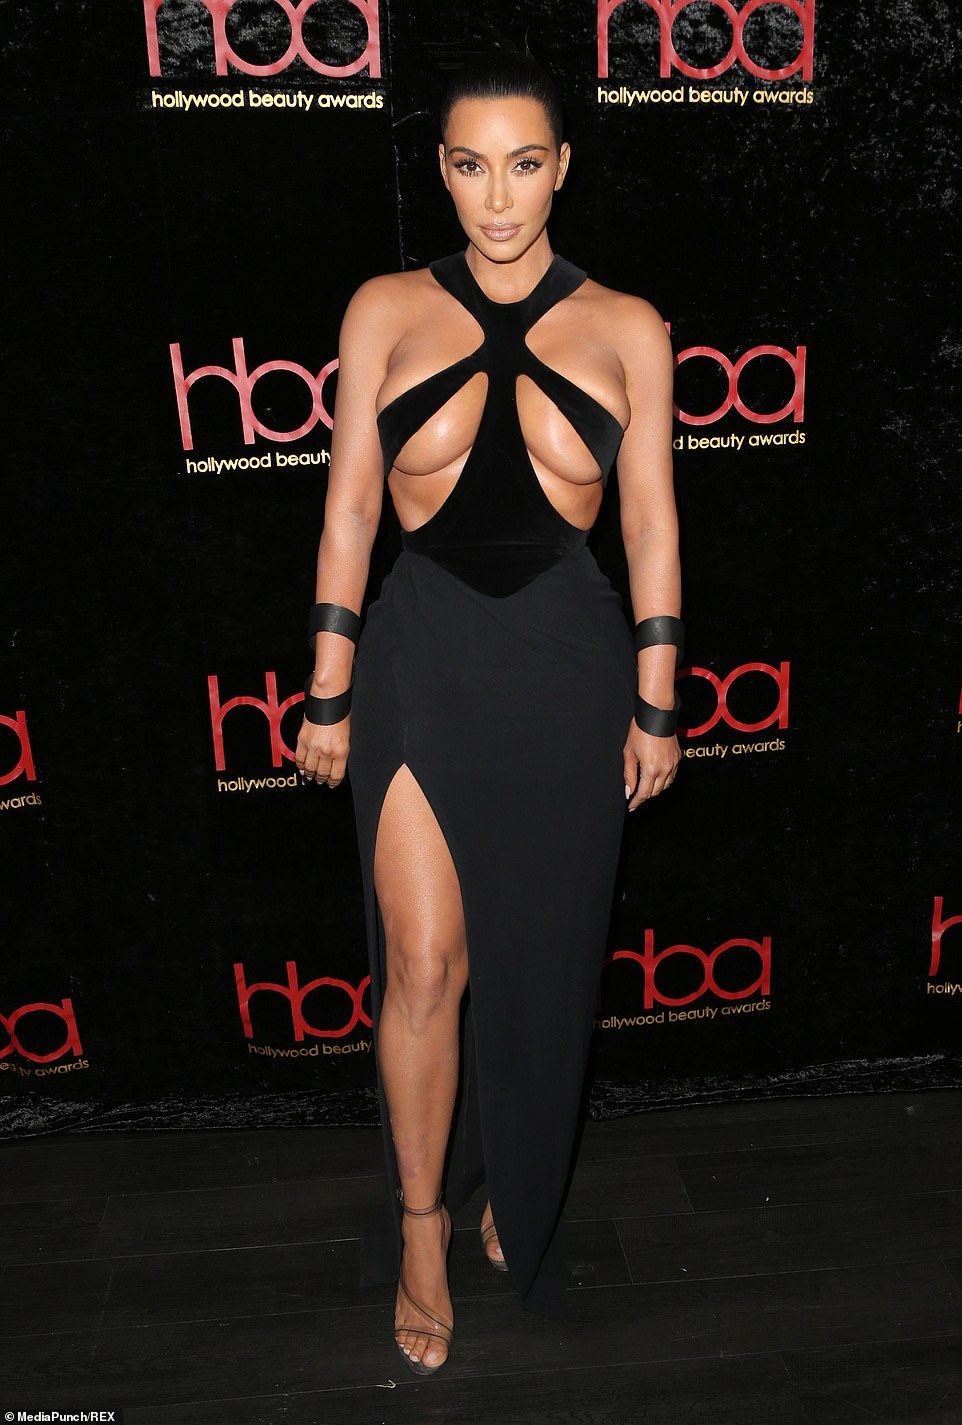 Kim Kardashian Risks Wardrobe Malfunction In Black Dress That Barely Covers Her Nipples